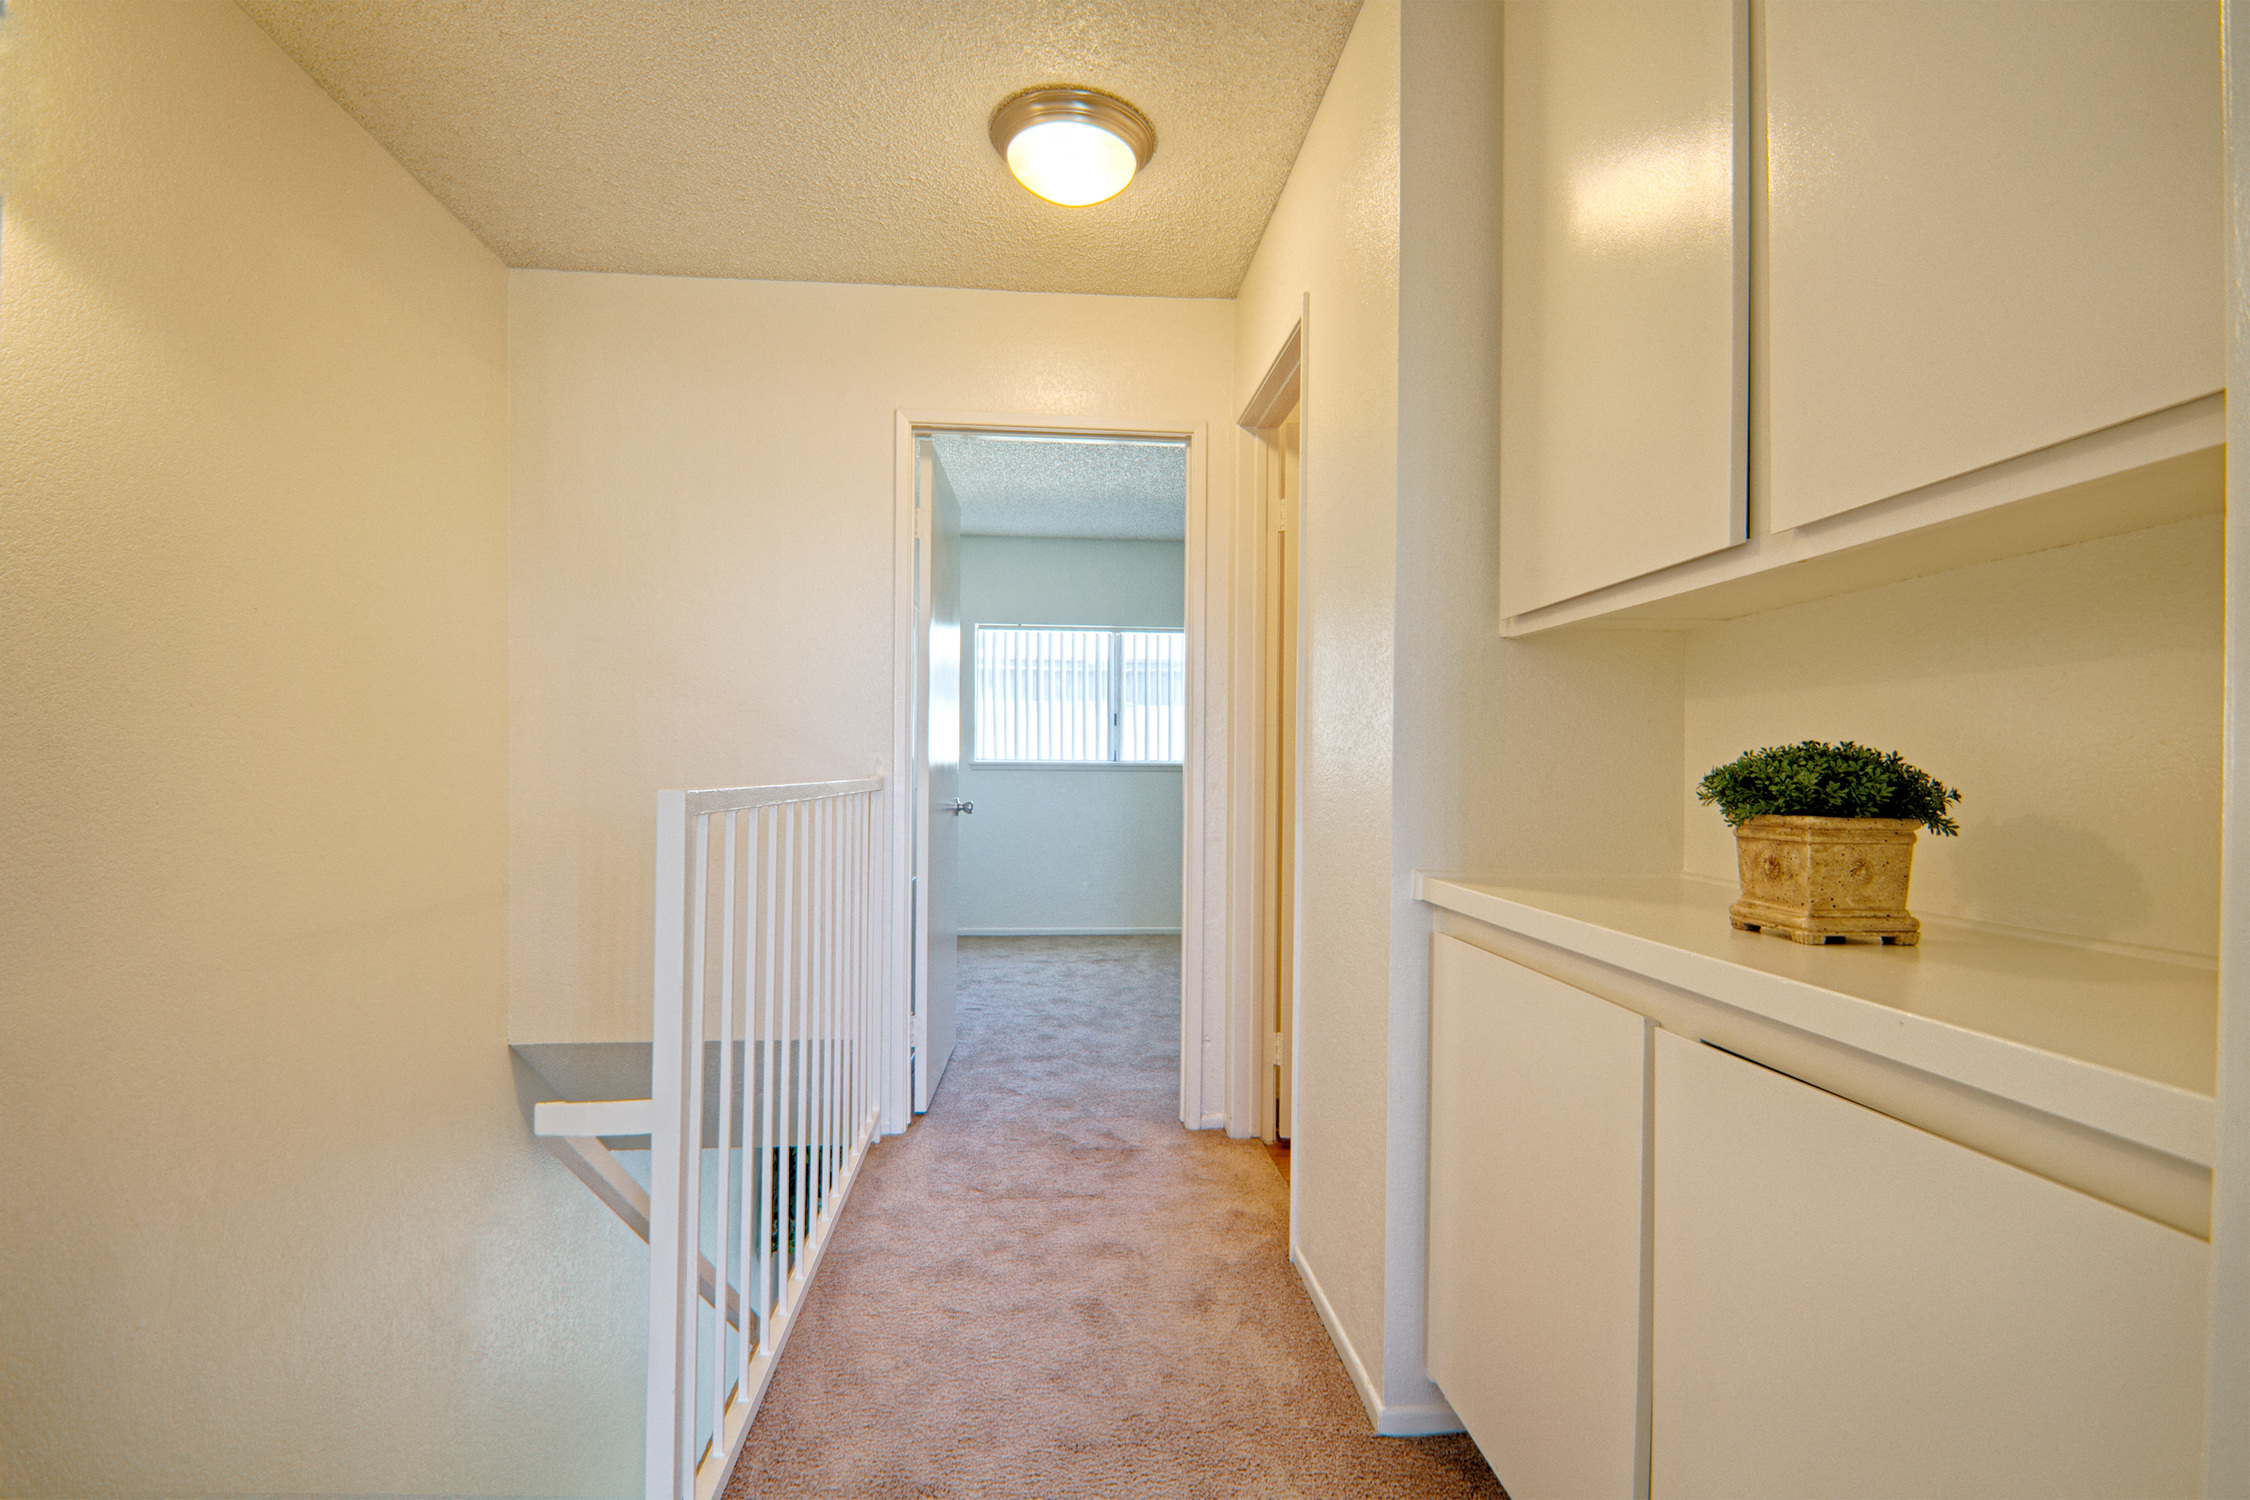 Upper Hallway with Storage at Woodlands West Townhomes, CA, 93536